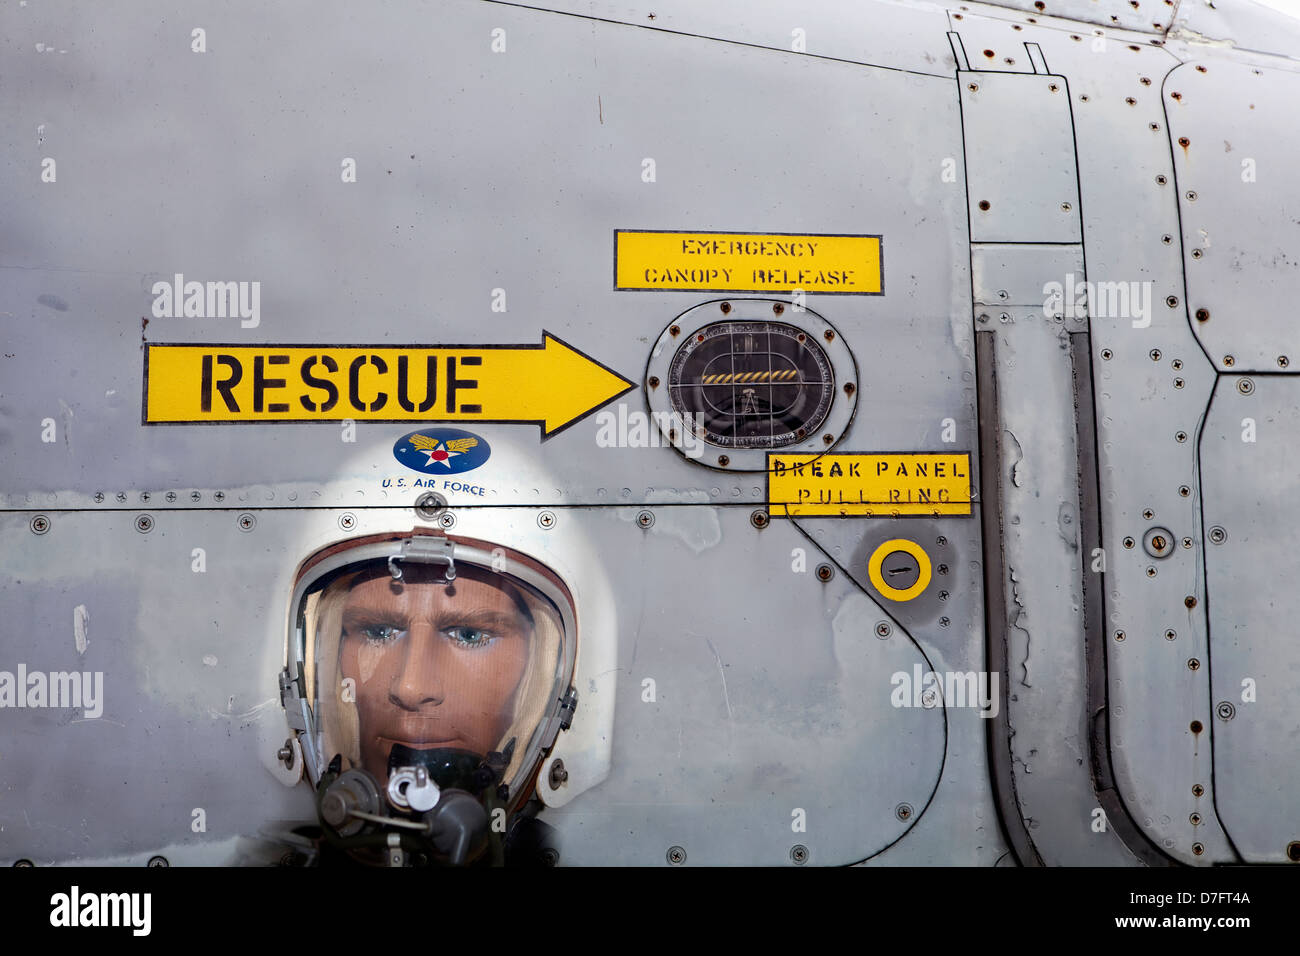 Model, Fighter Pilot with a pressure suit, US Air Force, Symbol ejection seat, Aircraft Collection Hermeskeil, Germany, - Stock Image